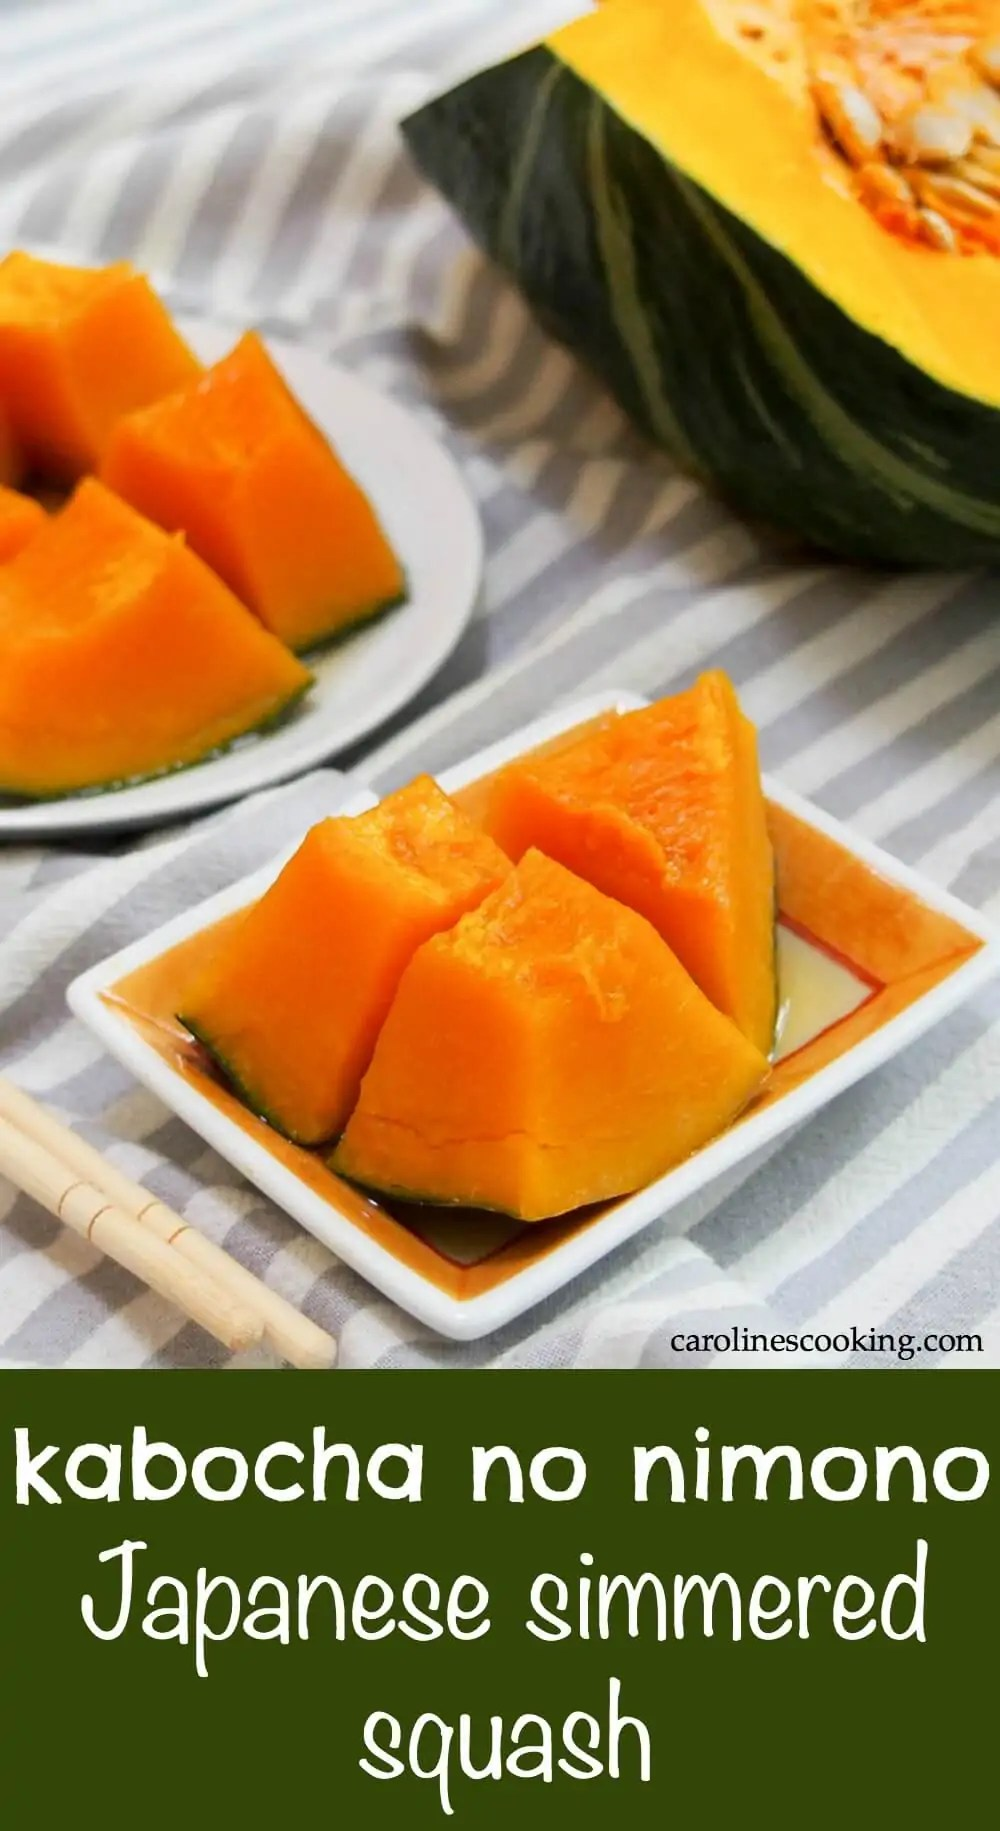 Kabocha is a bright, sweet squash and this classic Japanese way of preparing it, kabocha no nimono, really brings out the best in it. Tender, flavorful and with such a great rounded flavor. A delicious side to Japanese dishes as well as so much more. #kabocha #squash #sidedish #japanese #vegetarian